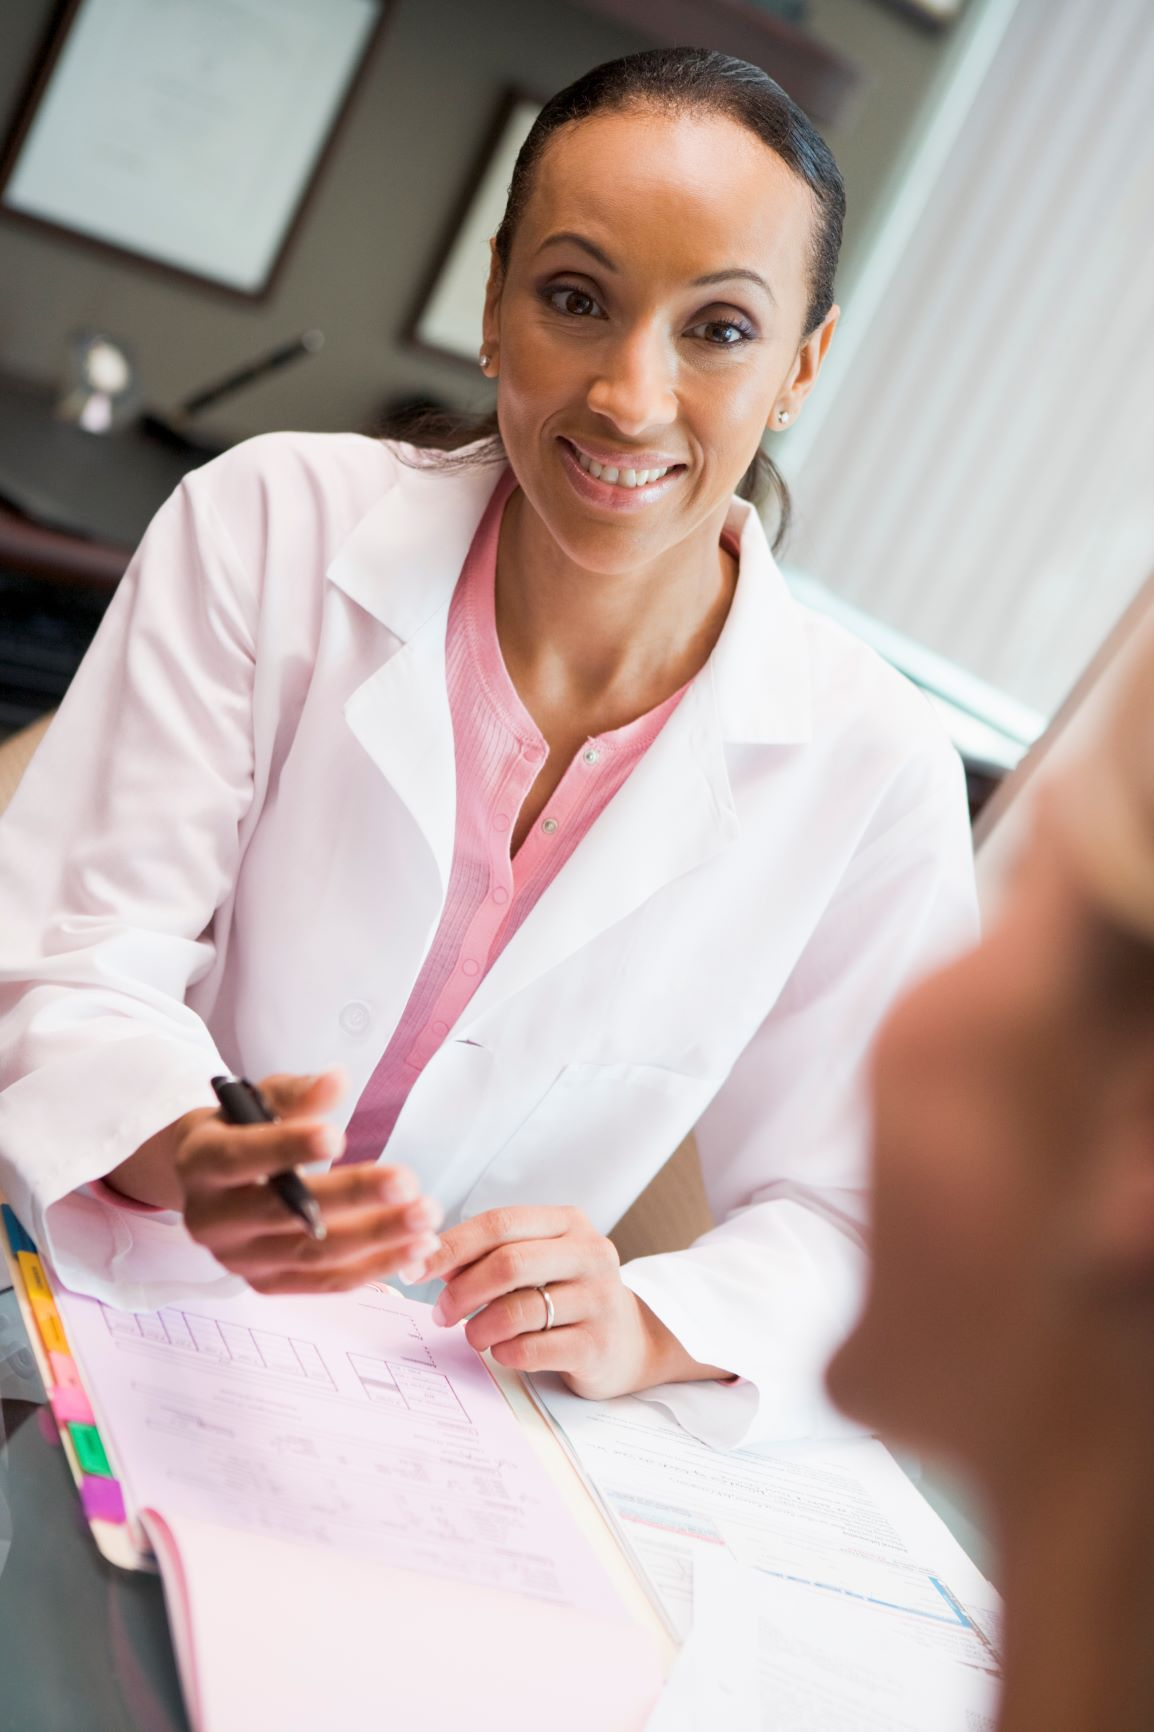 woman-in-discussion-with-patient-in-ivf-clinic-seated-at-desk_HFlj230Bi_smaller.jpg